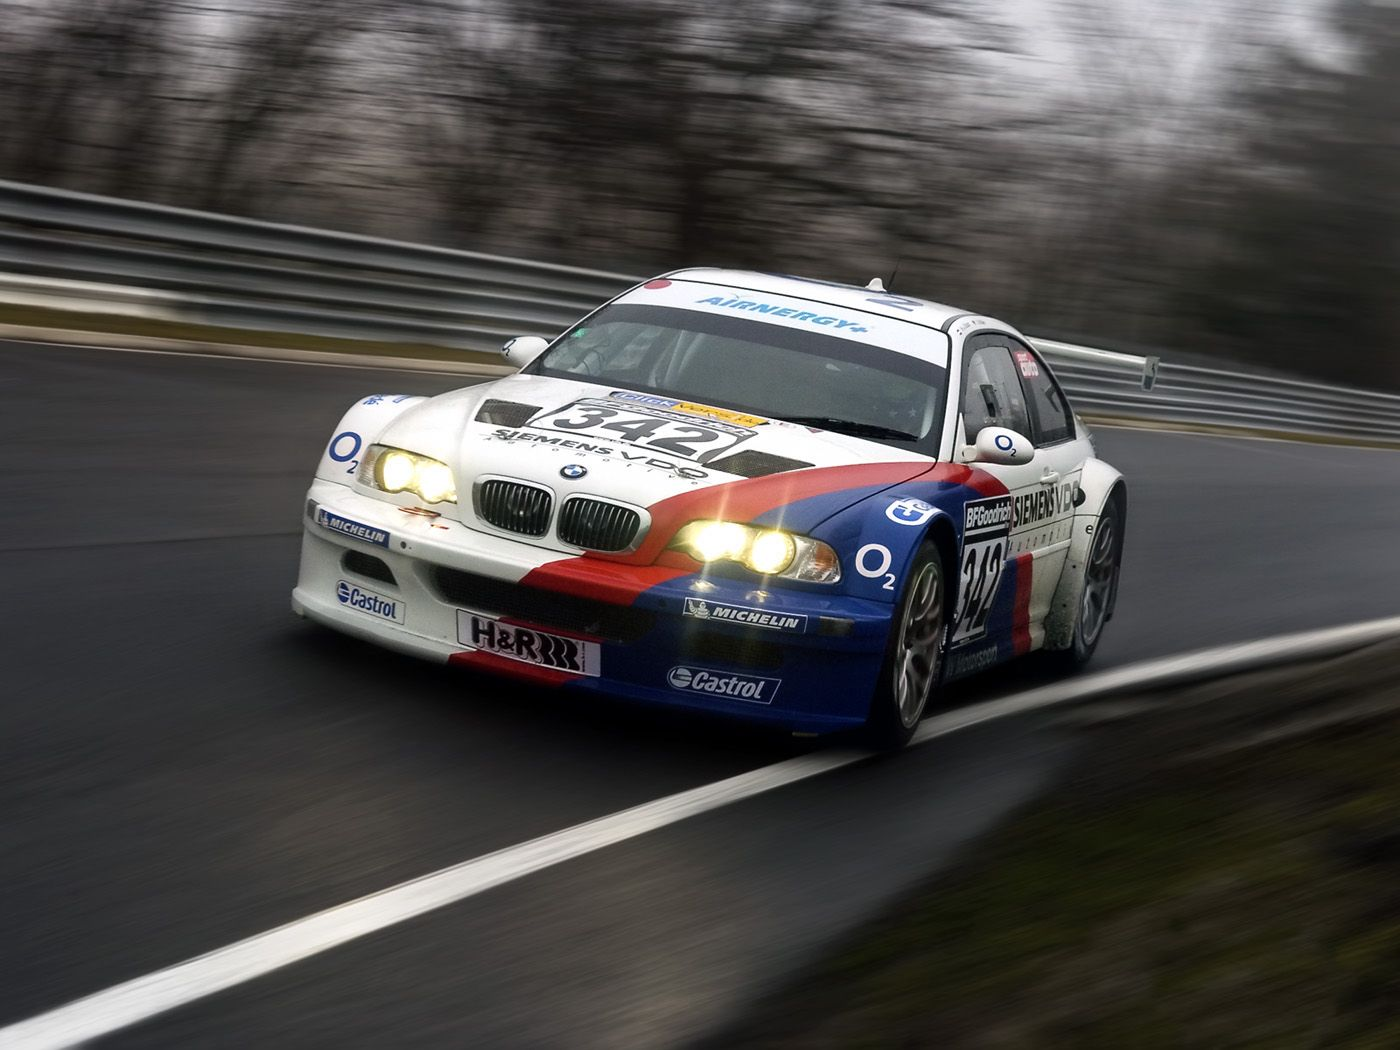 The Bmw M3 Gtr Still Remains One Of The Most Iconic Race Cars Bmw Have Ever Produced It Dominated Spa And The Nurburgring In 2004 200 Bmw M3 Bmw Bmw Motorrad